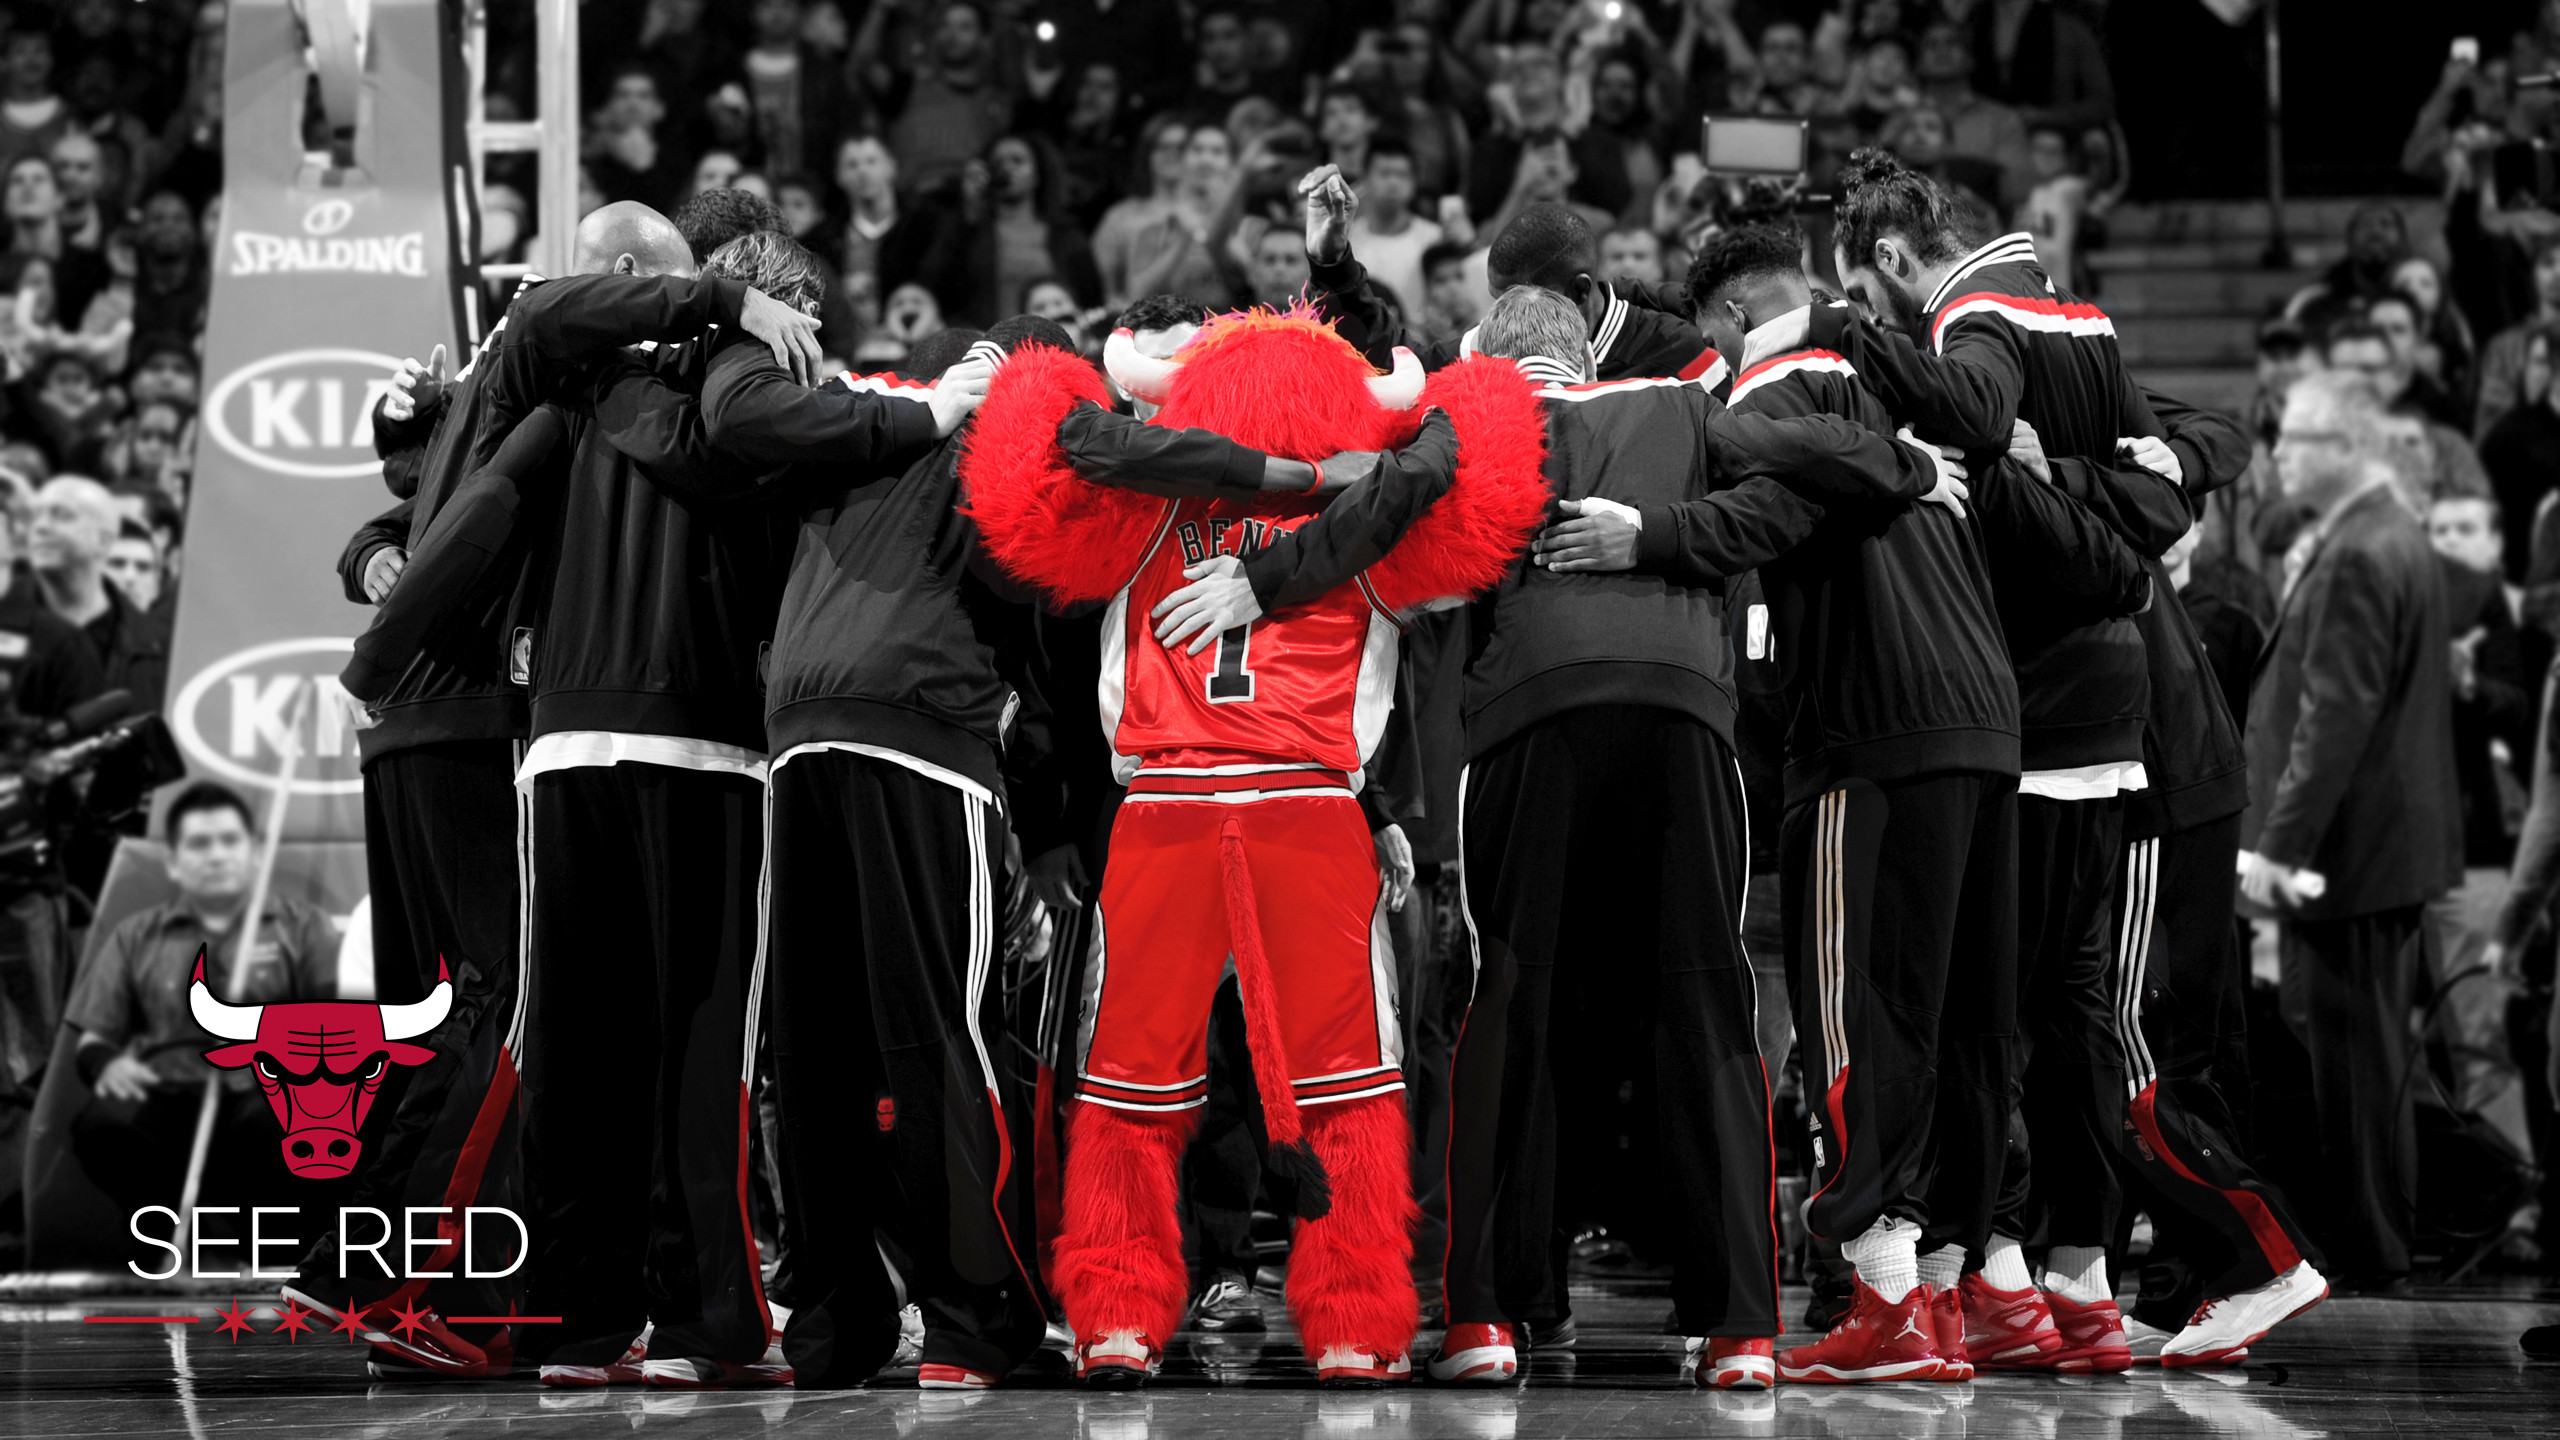 2560x1440 SEE RED - Huddle